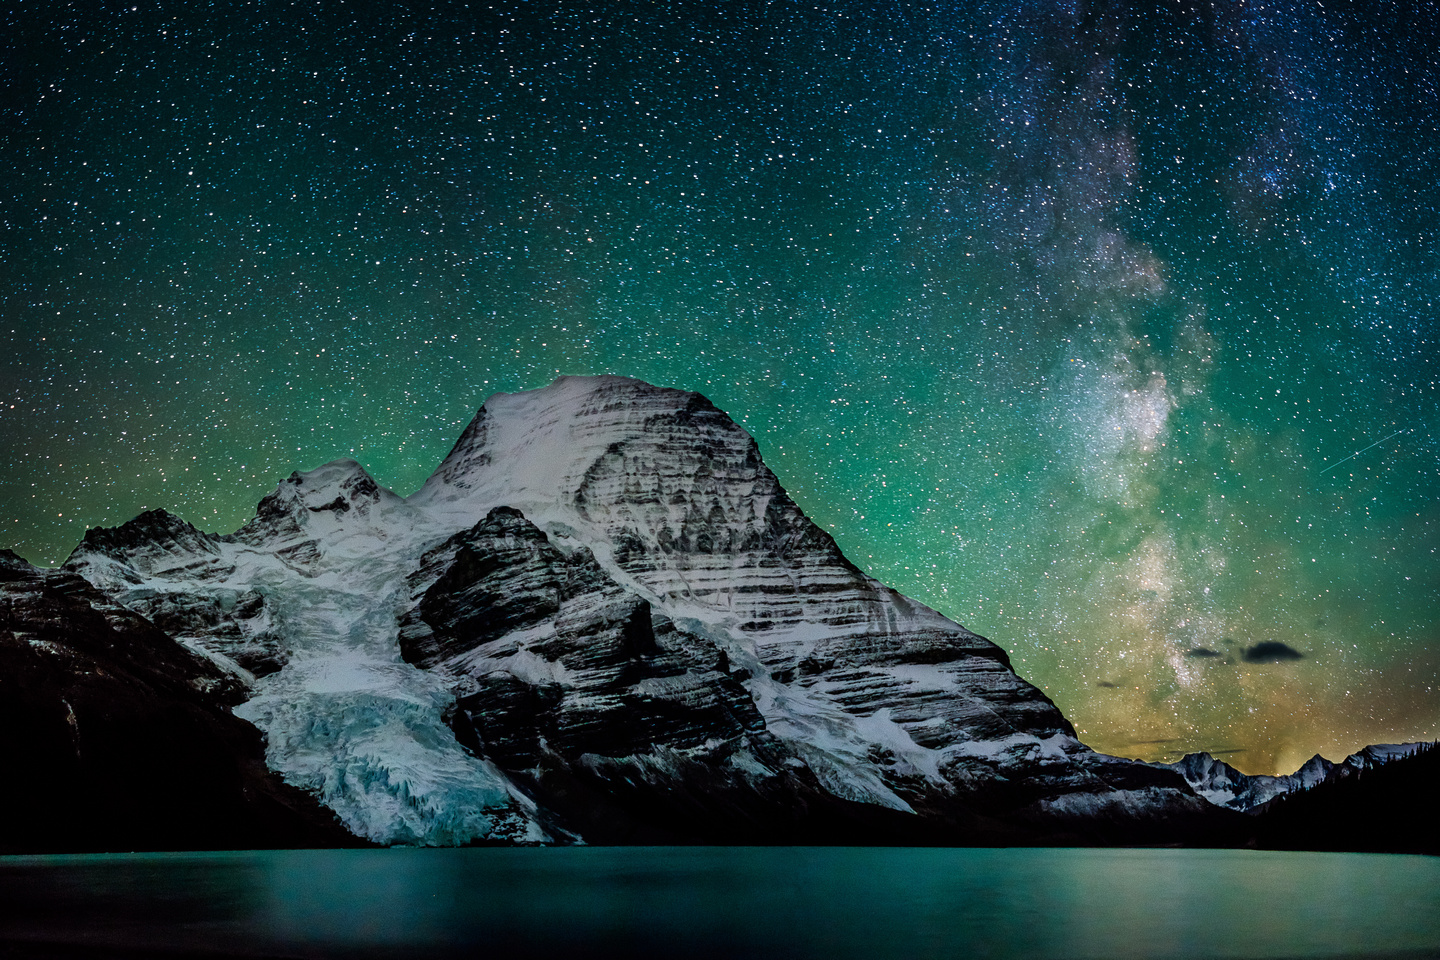 Waffl, Helmet, the Berg Glacier and Mount Robson with the Milky way above.